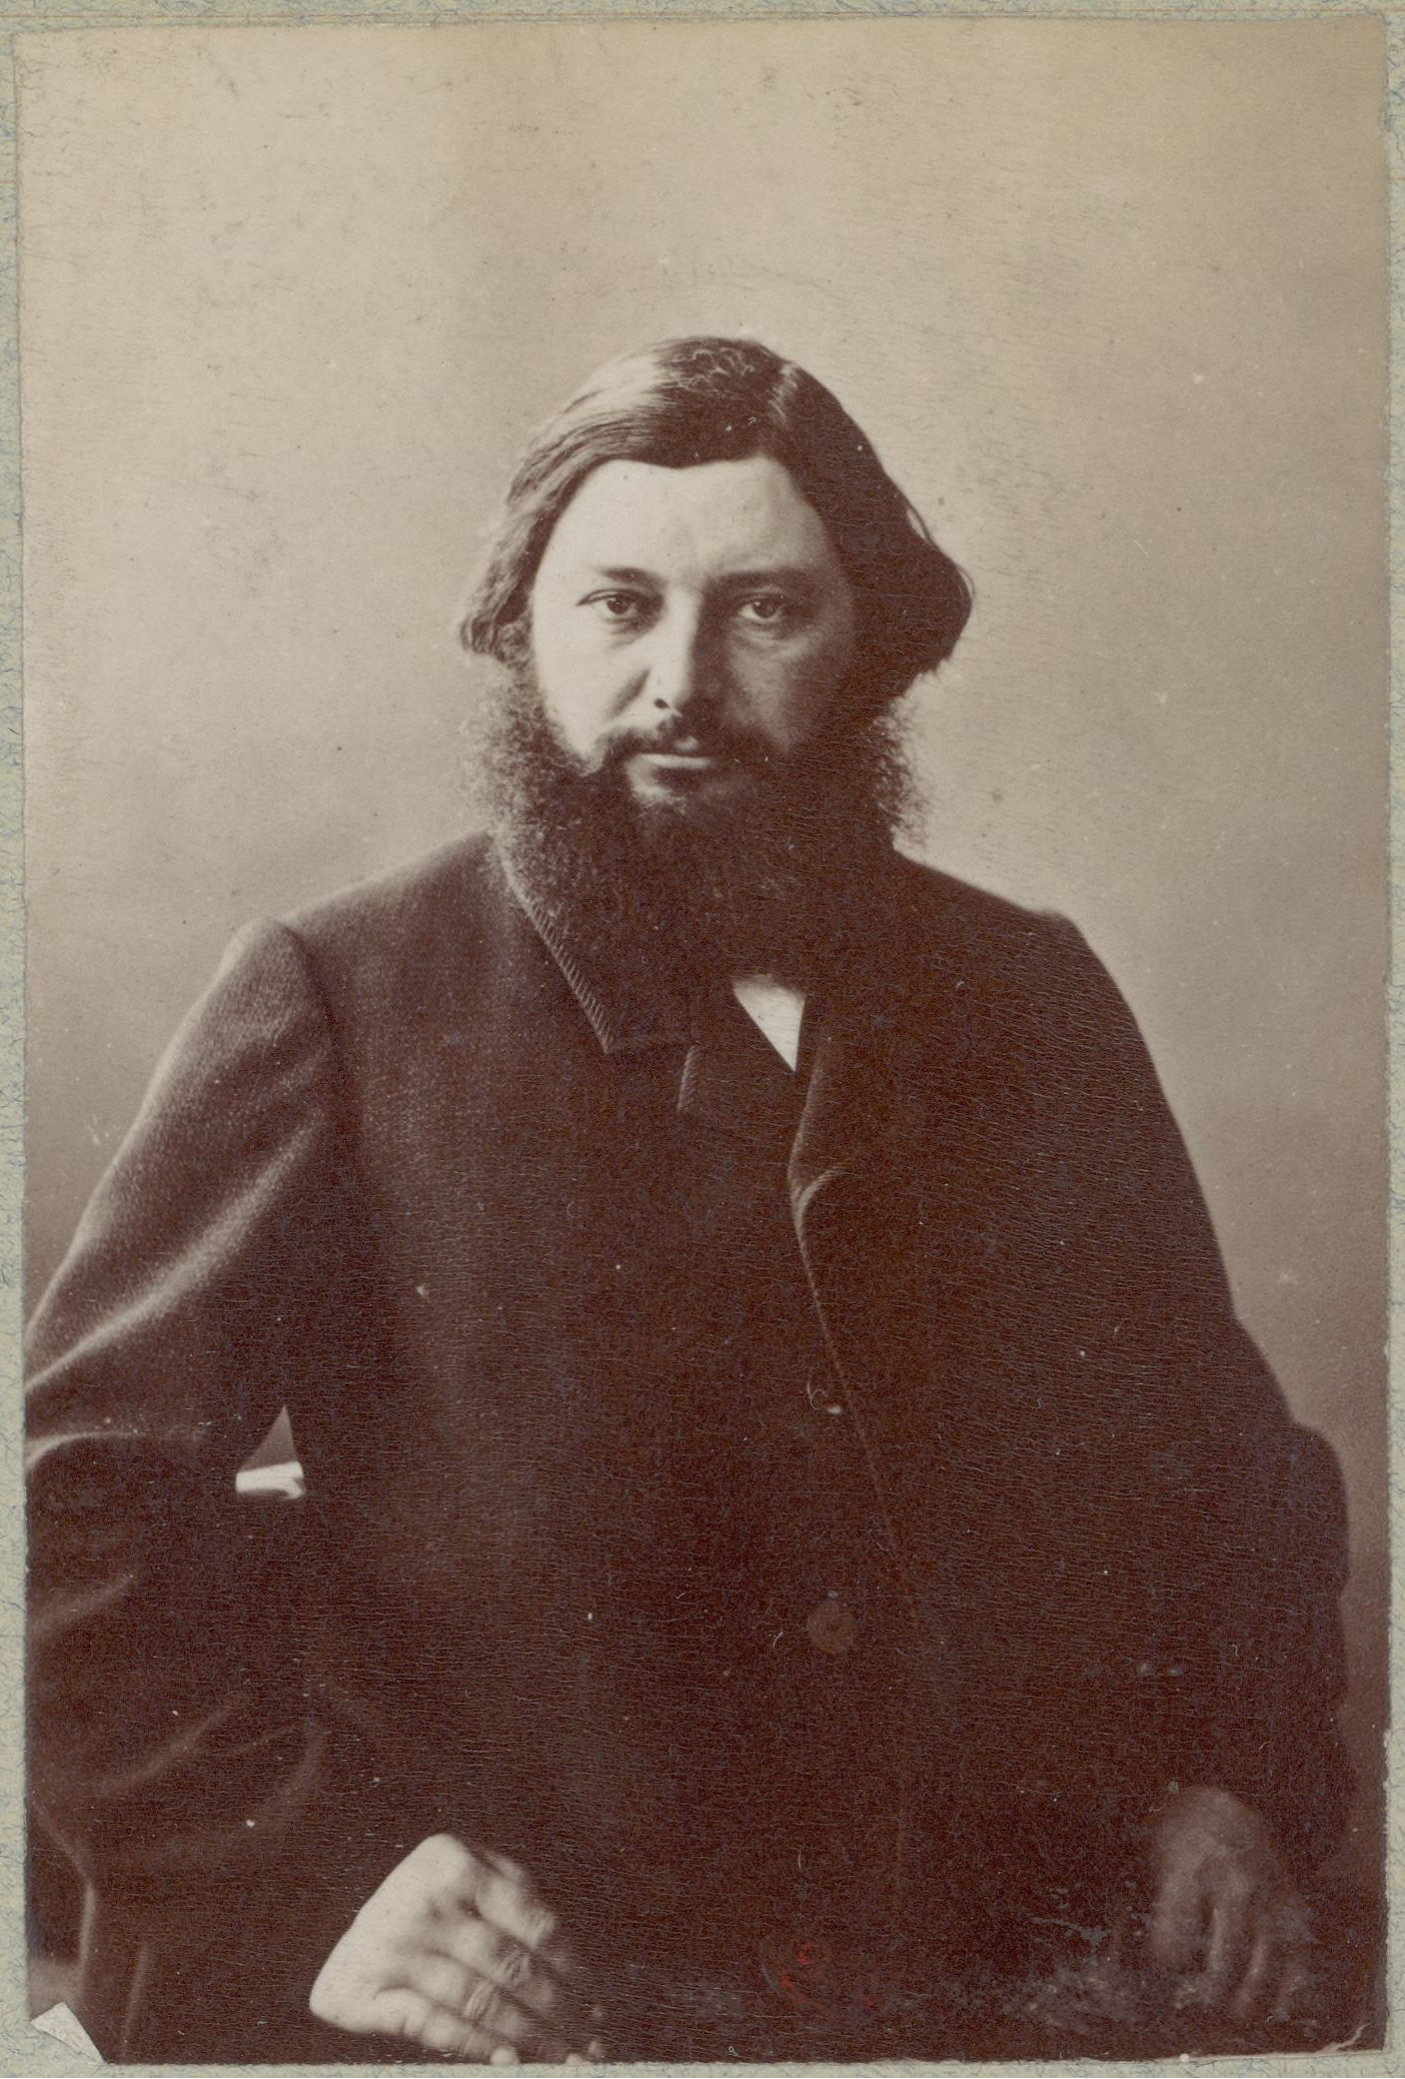 Image of Gustave Courbet from Wikidata